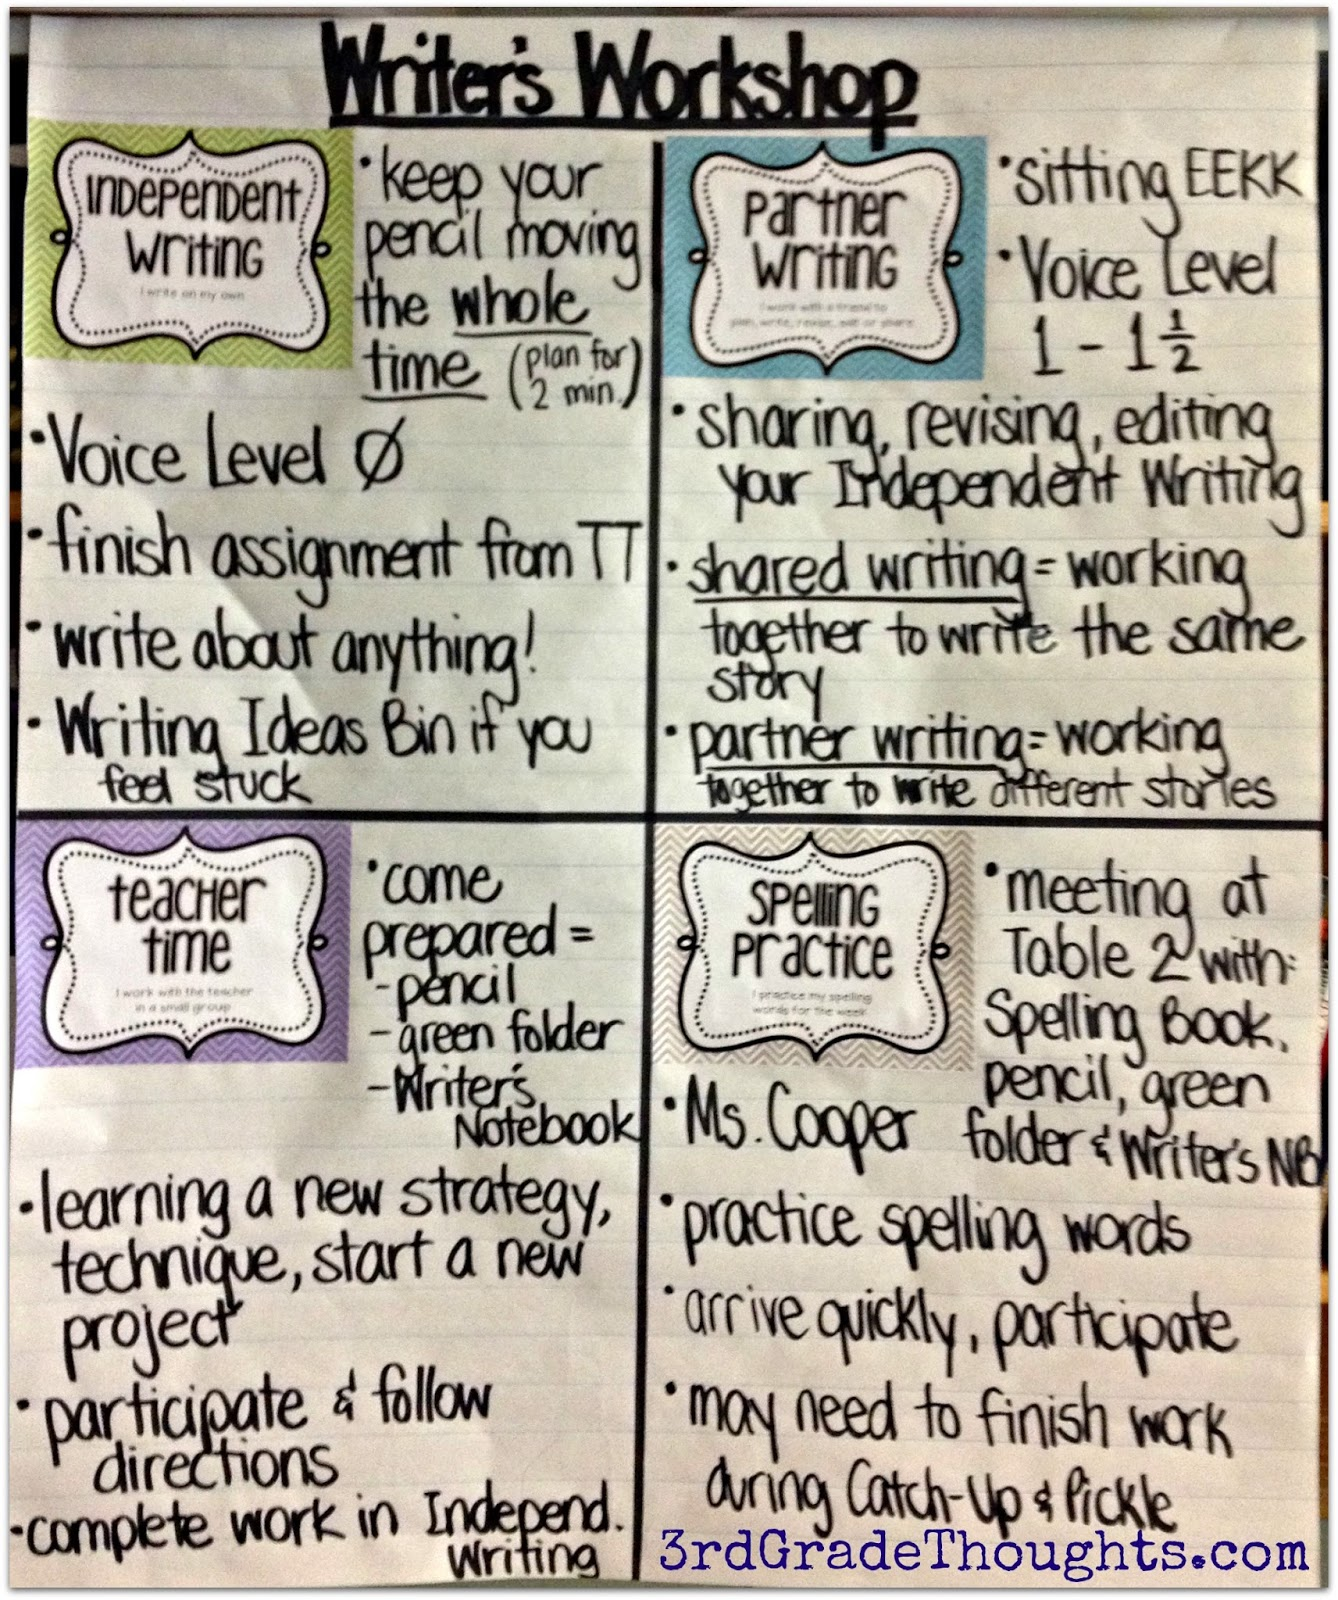 Four Simple Steps to Small-Group Guided Writing